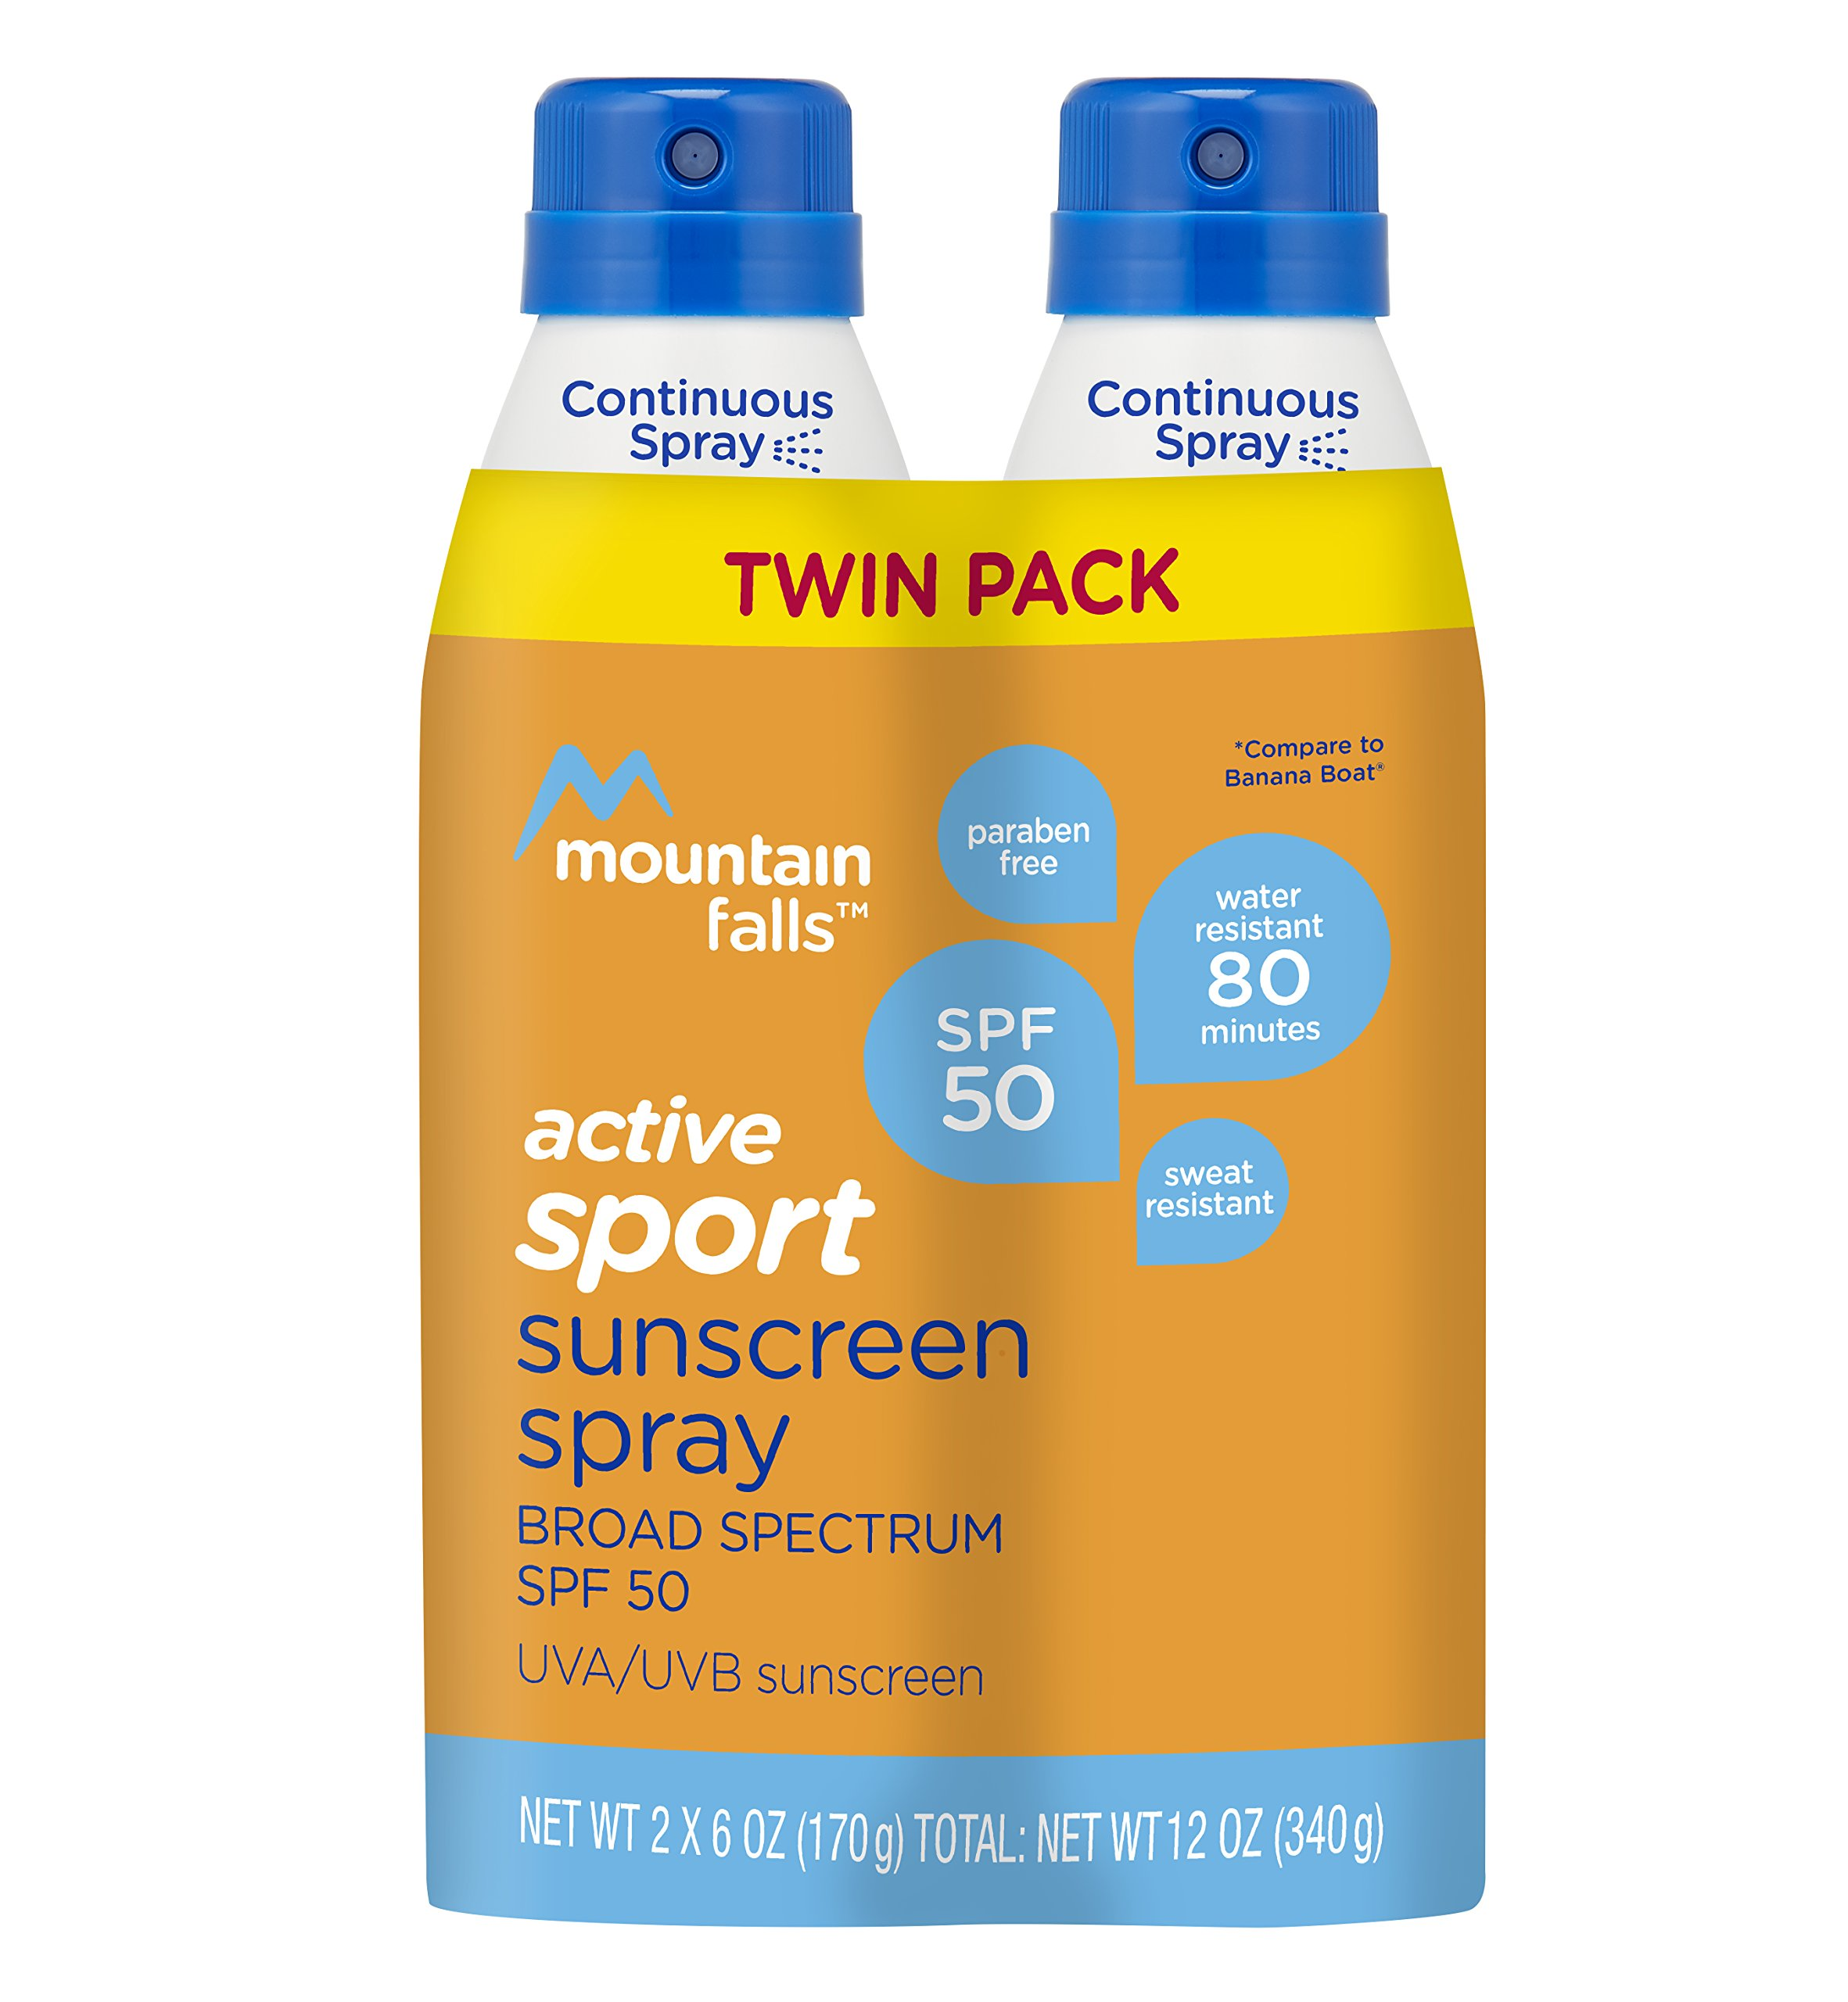 Mountain Falls Active Sport Sunscreen Continuous Spray, SPF 50 Broad Spectrum UVA/UVB Protection, Compare to Banana Boat, 6 Ounce (Pack of 2)